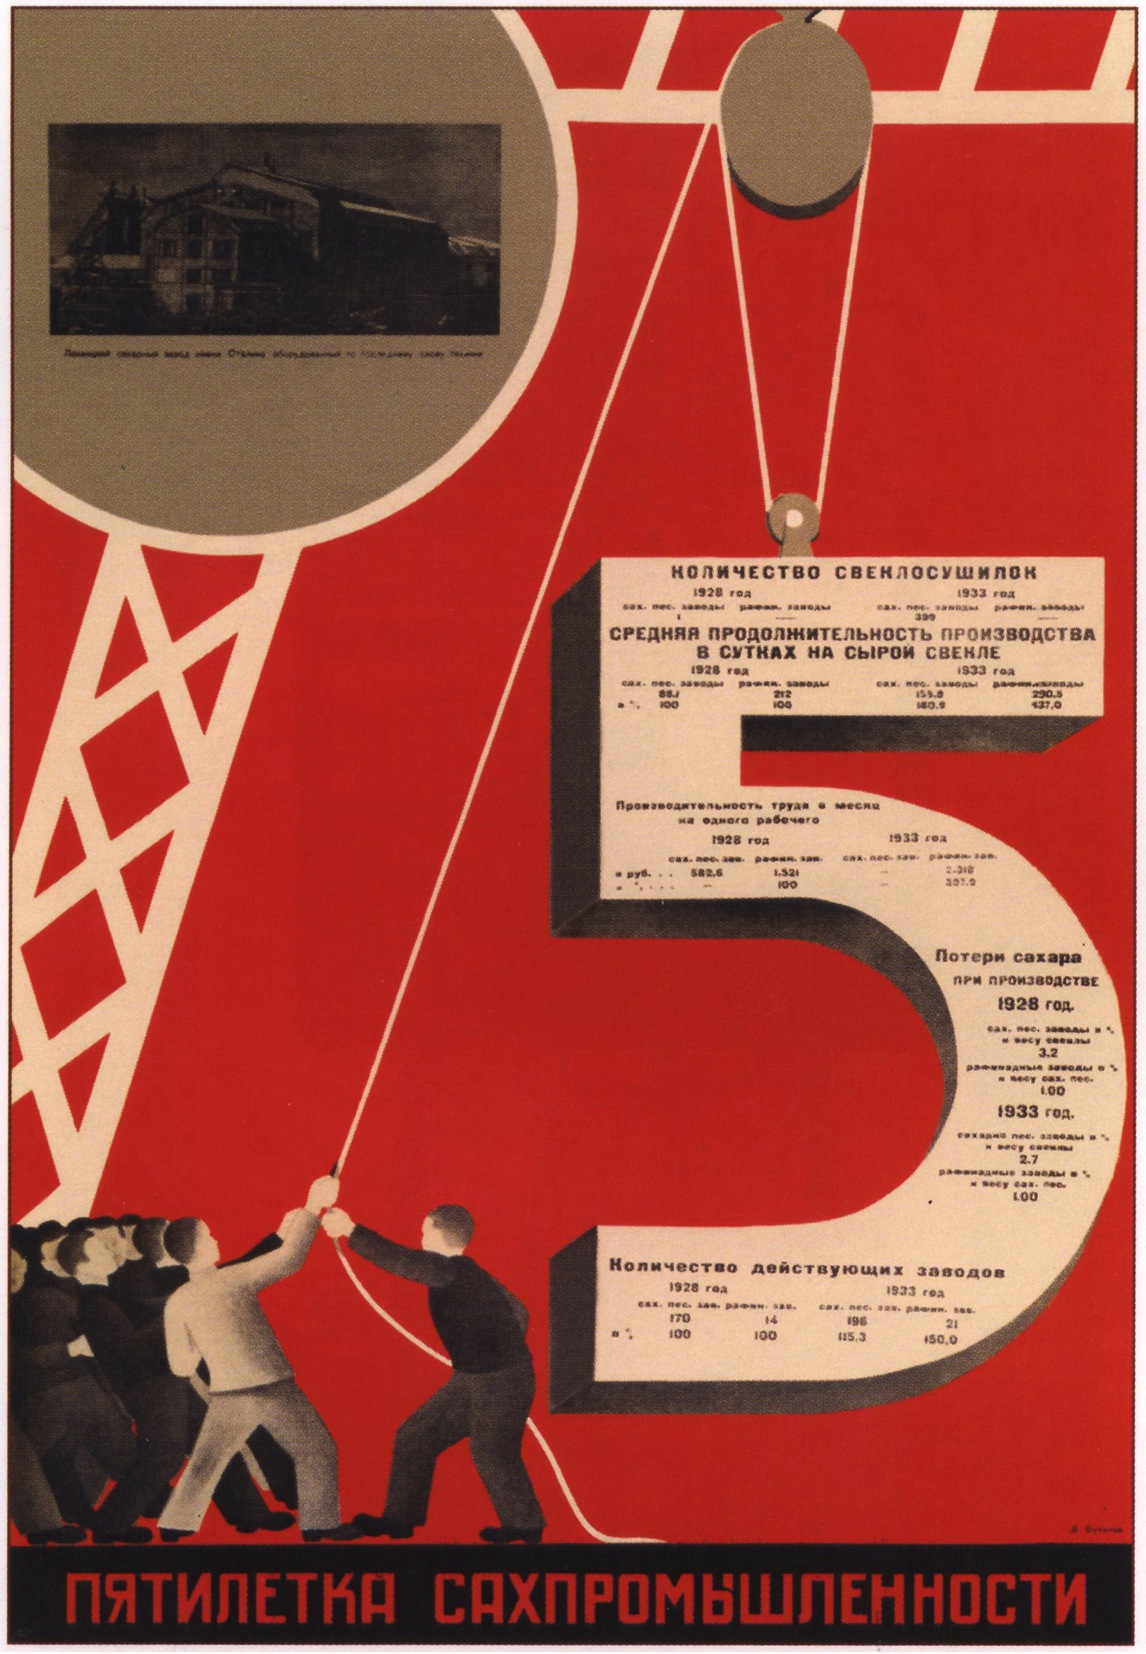 Soviet five-year plan propaganda poster